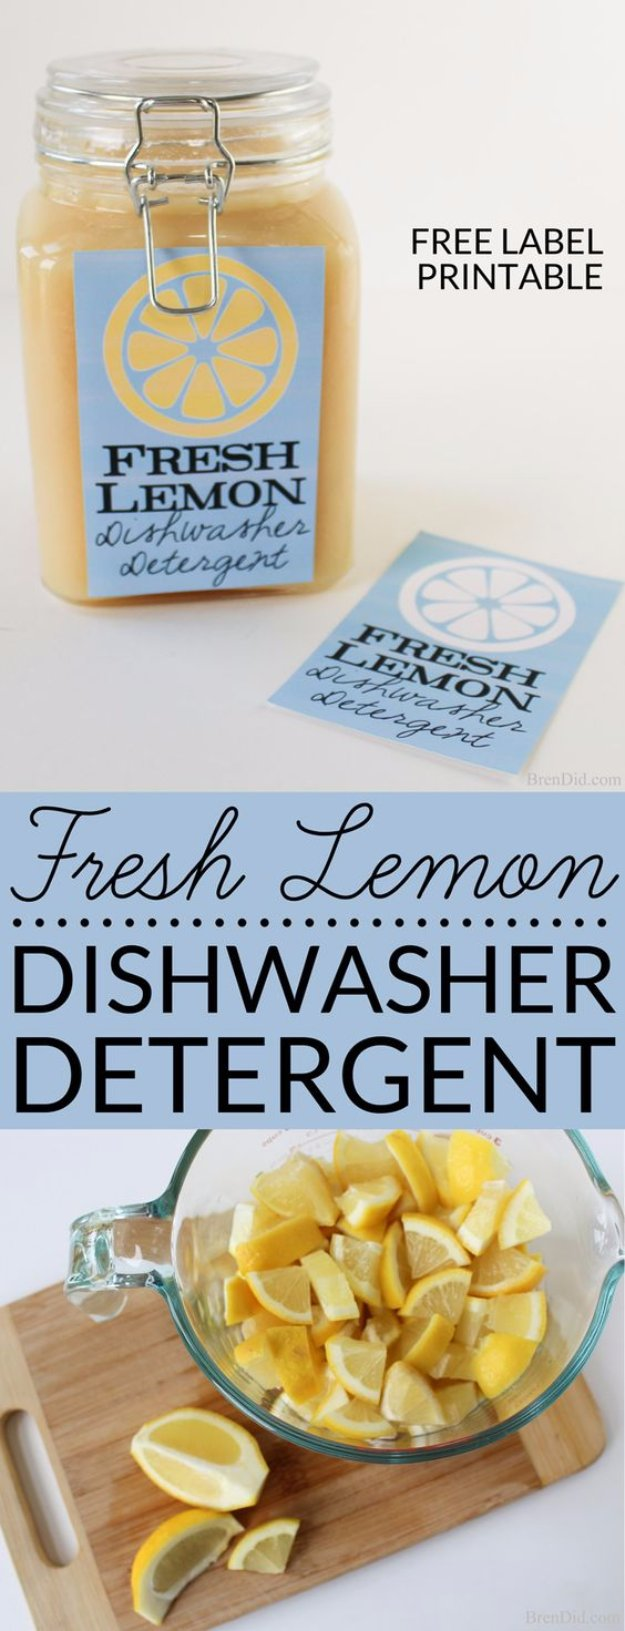 Best Natural Homemade DIY Cleaners and Recipes - Fresh Lemon Dishwasher Detergent Recipe - All Purposed Home Care and Cleaning with Vinegar, Essential Oils and Other Natural Ingredients For Cleaning Bathroom, Kitchen, Floors, Laundry, Furniture and More